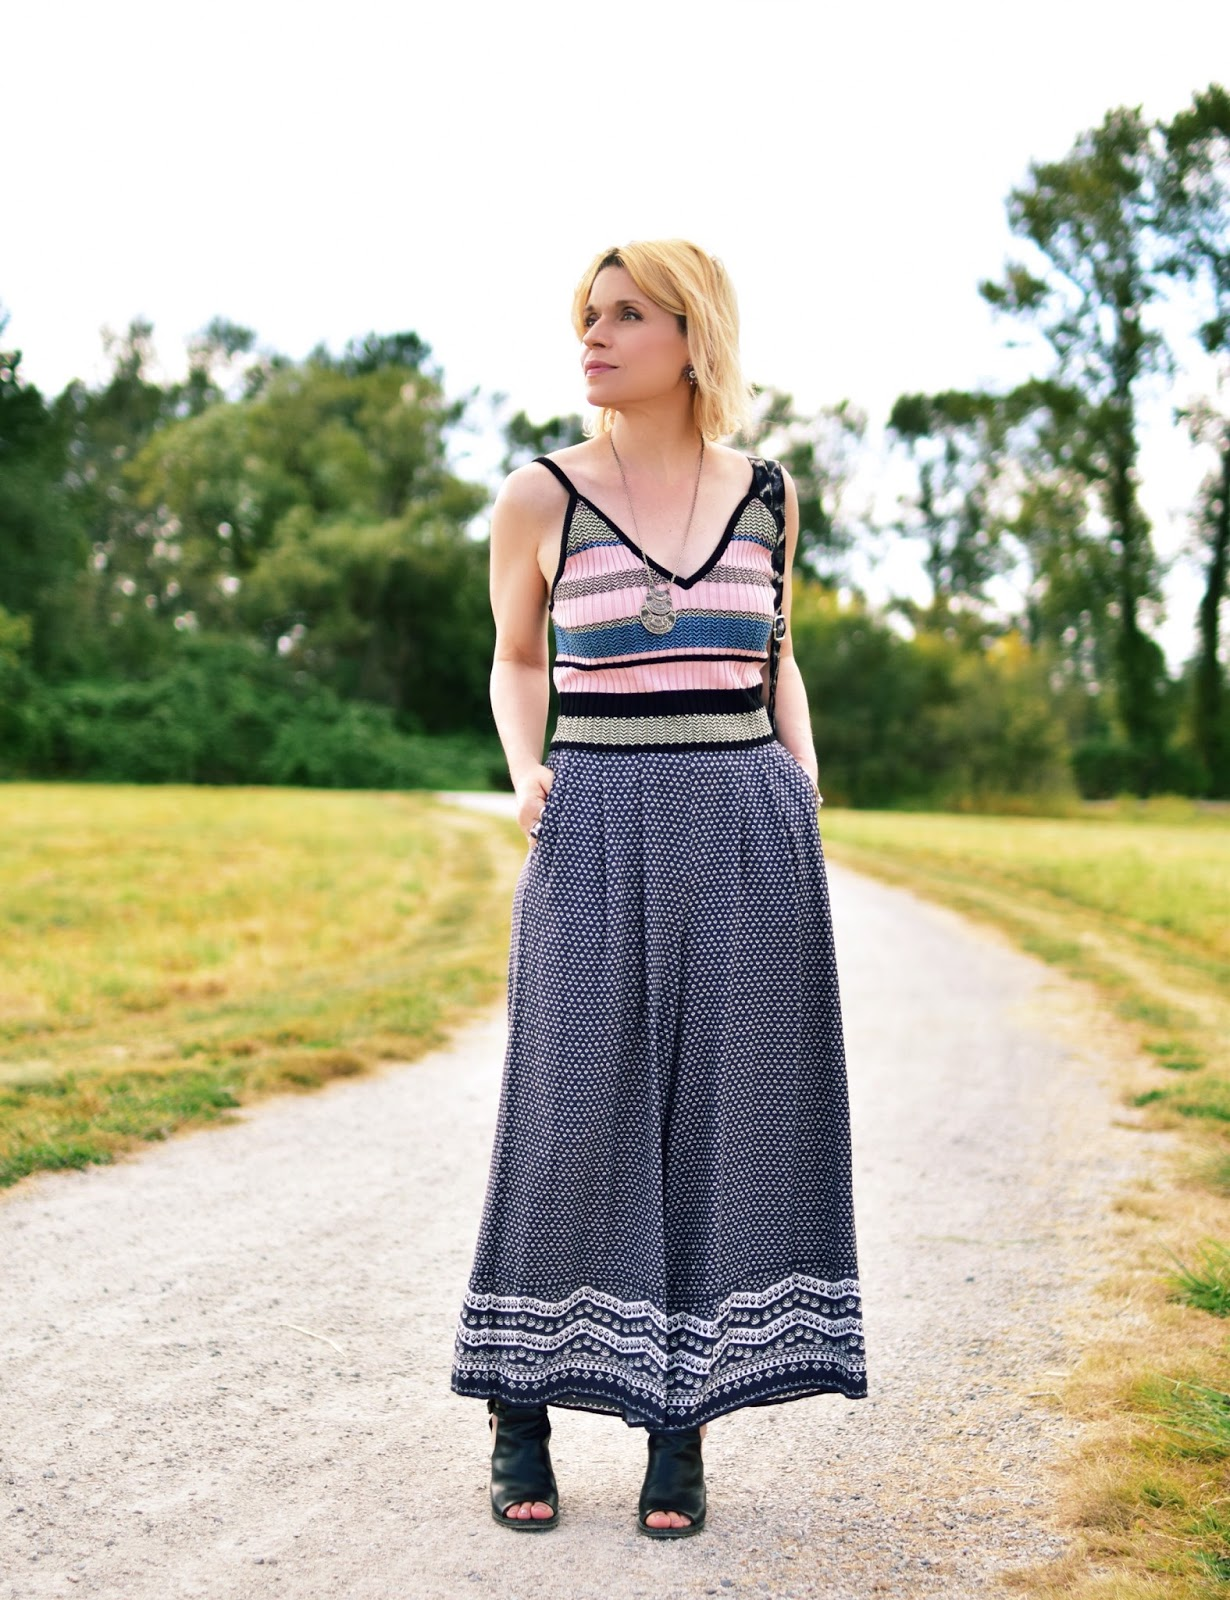 Monika Faulkner styles patterned palazzo pants with a striped tank top and cut-out booties